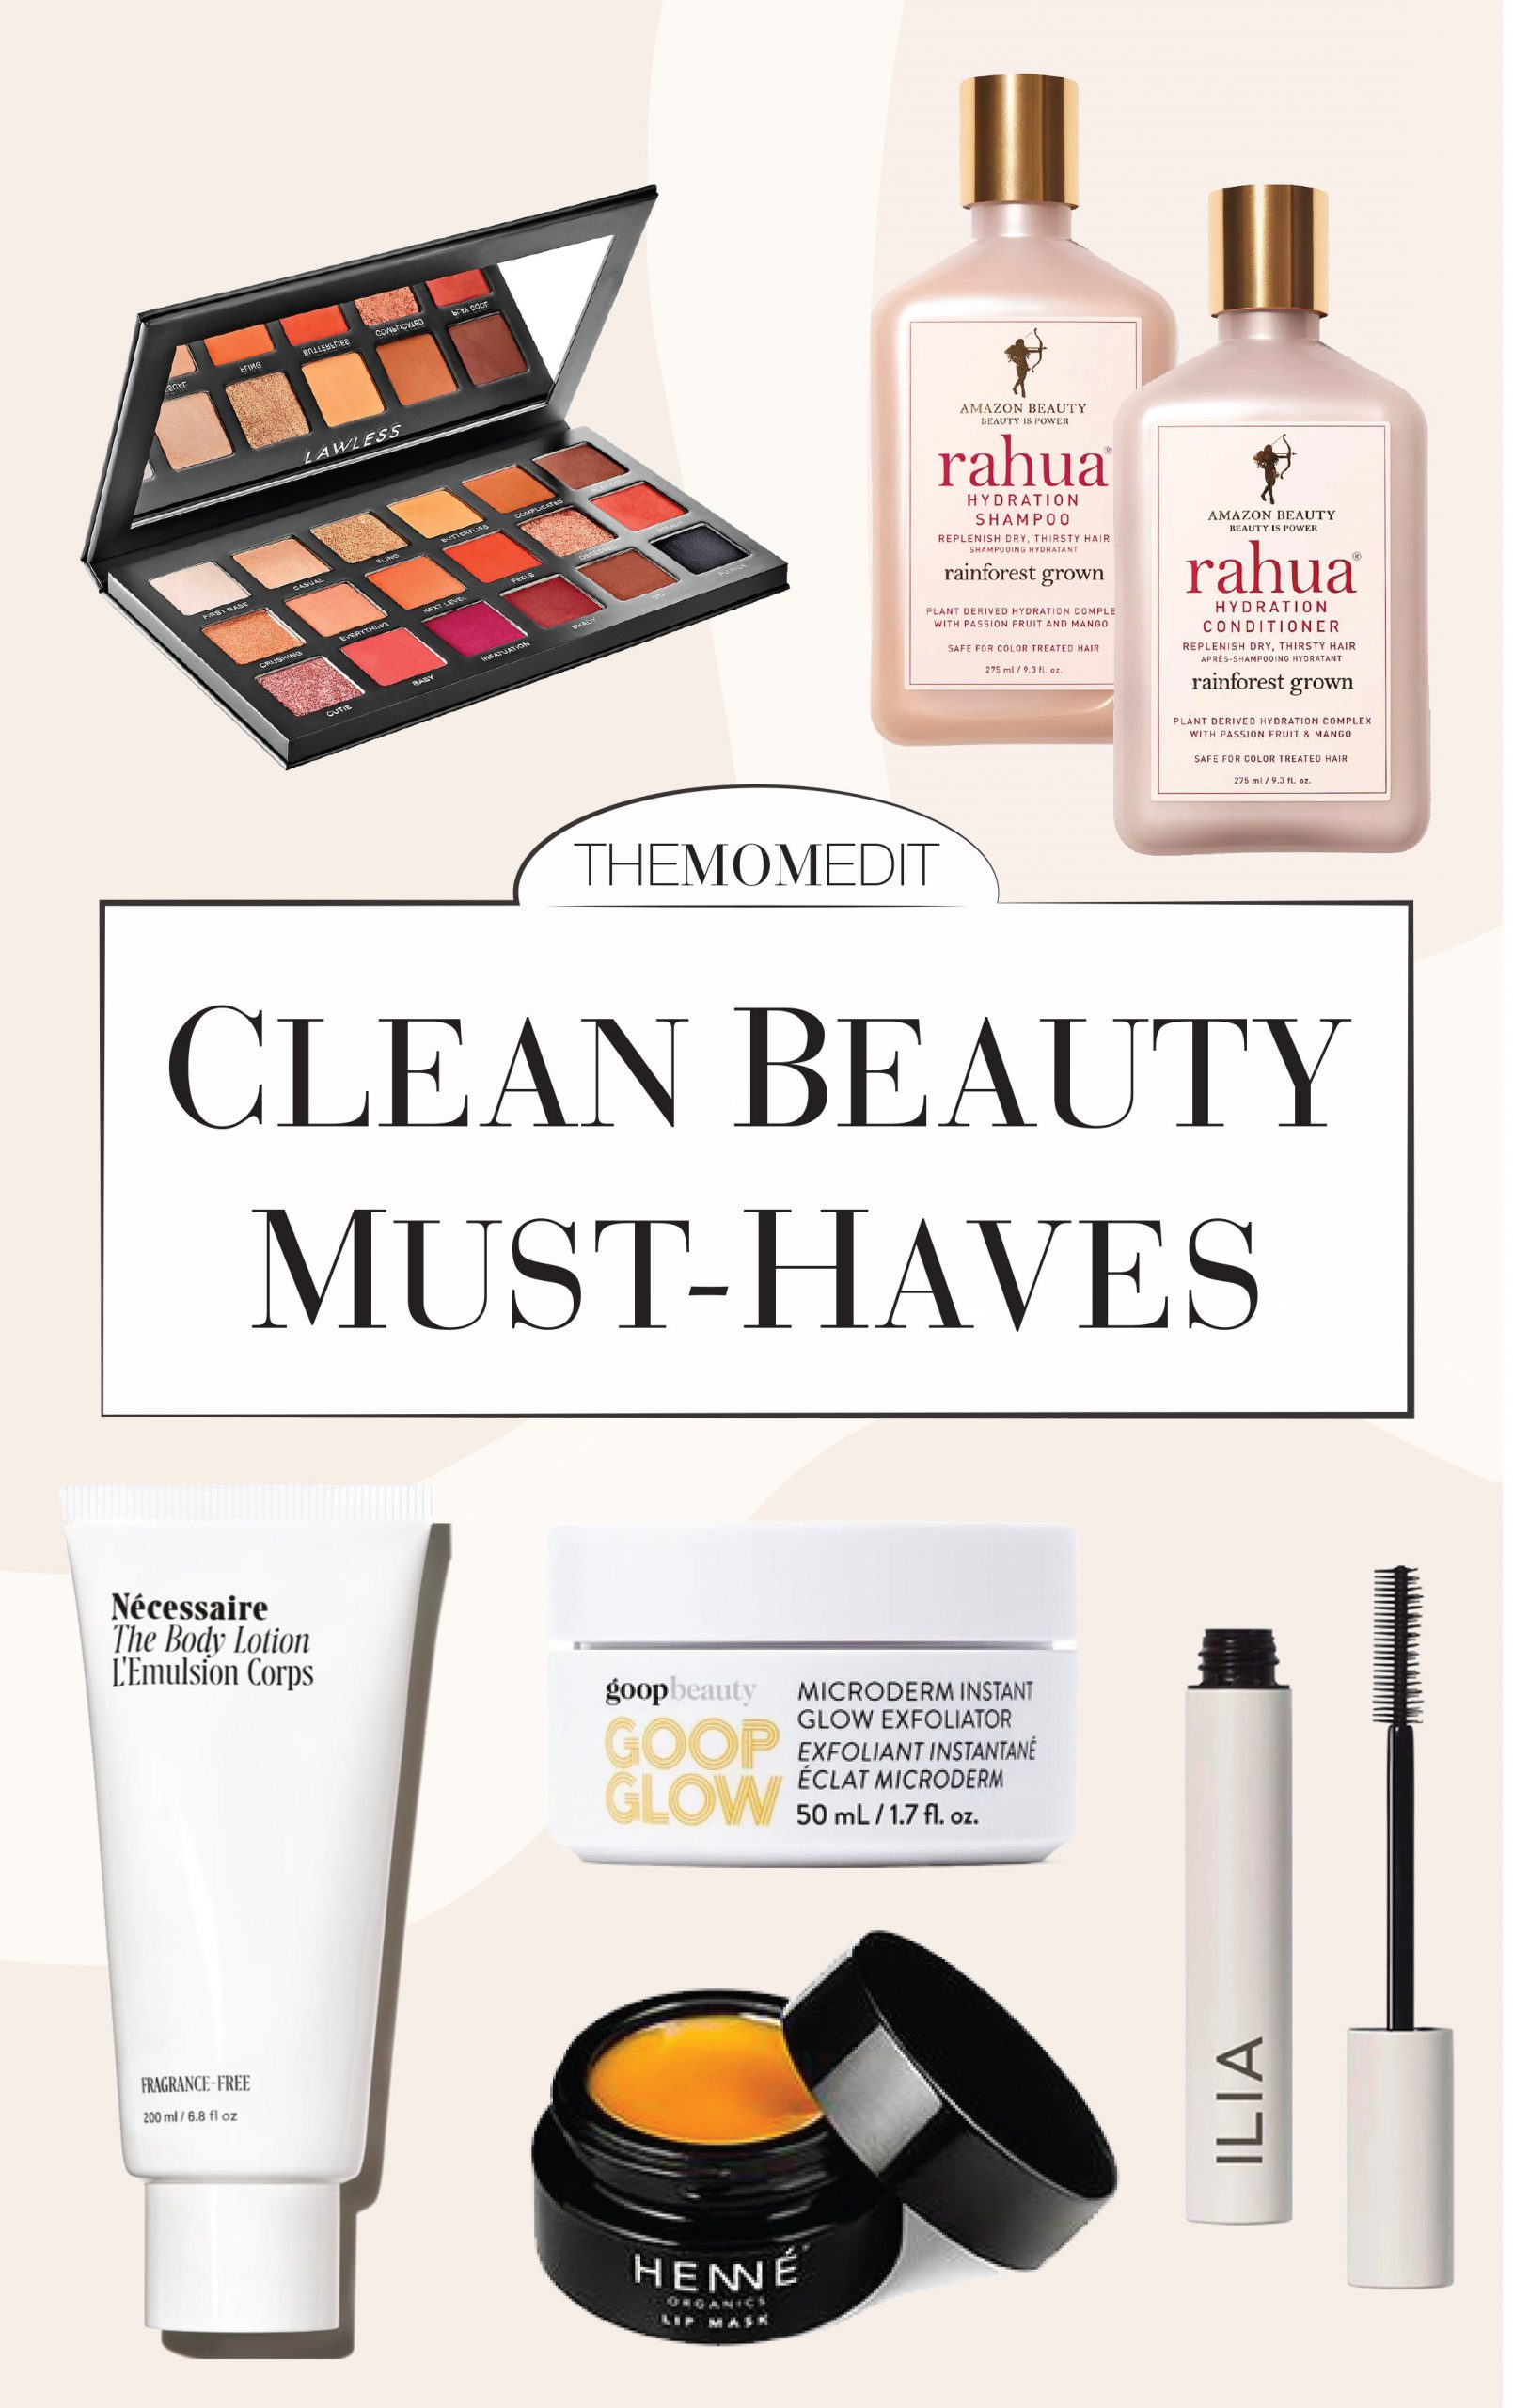 An all-star list of clean skincare & makeup products we love & swear by. Think Briogeo, Goop, Tata Harper, Kosas, Rahua & more beauty brands.